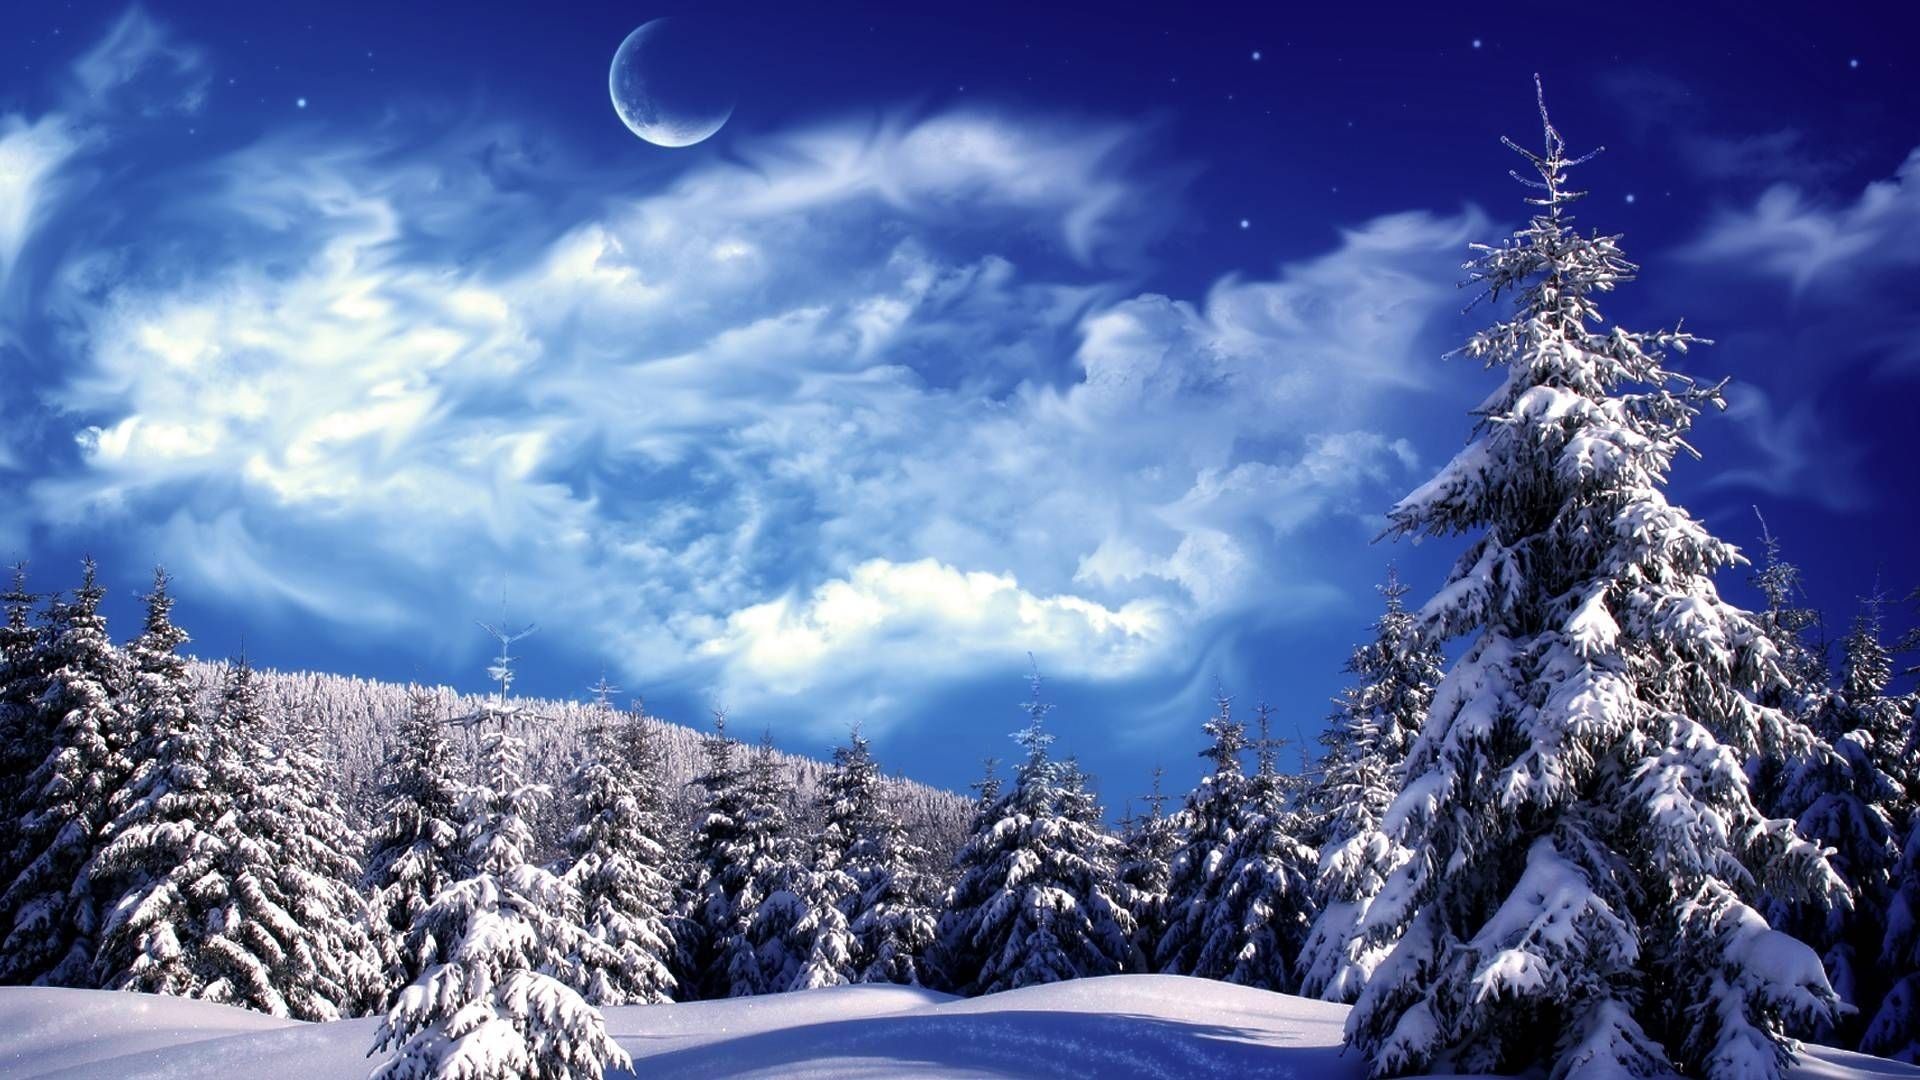 winter wonderland desktop backgrounds wallpaper | wonderland